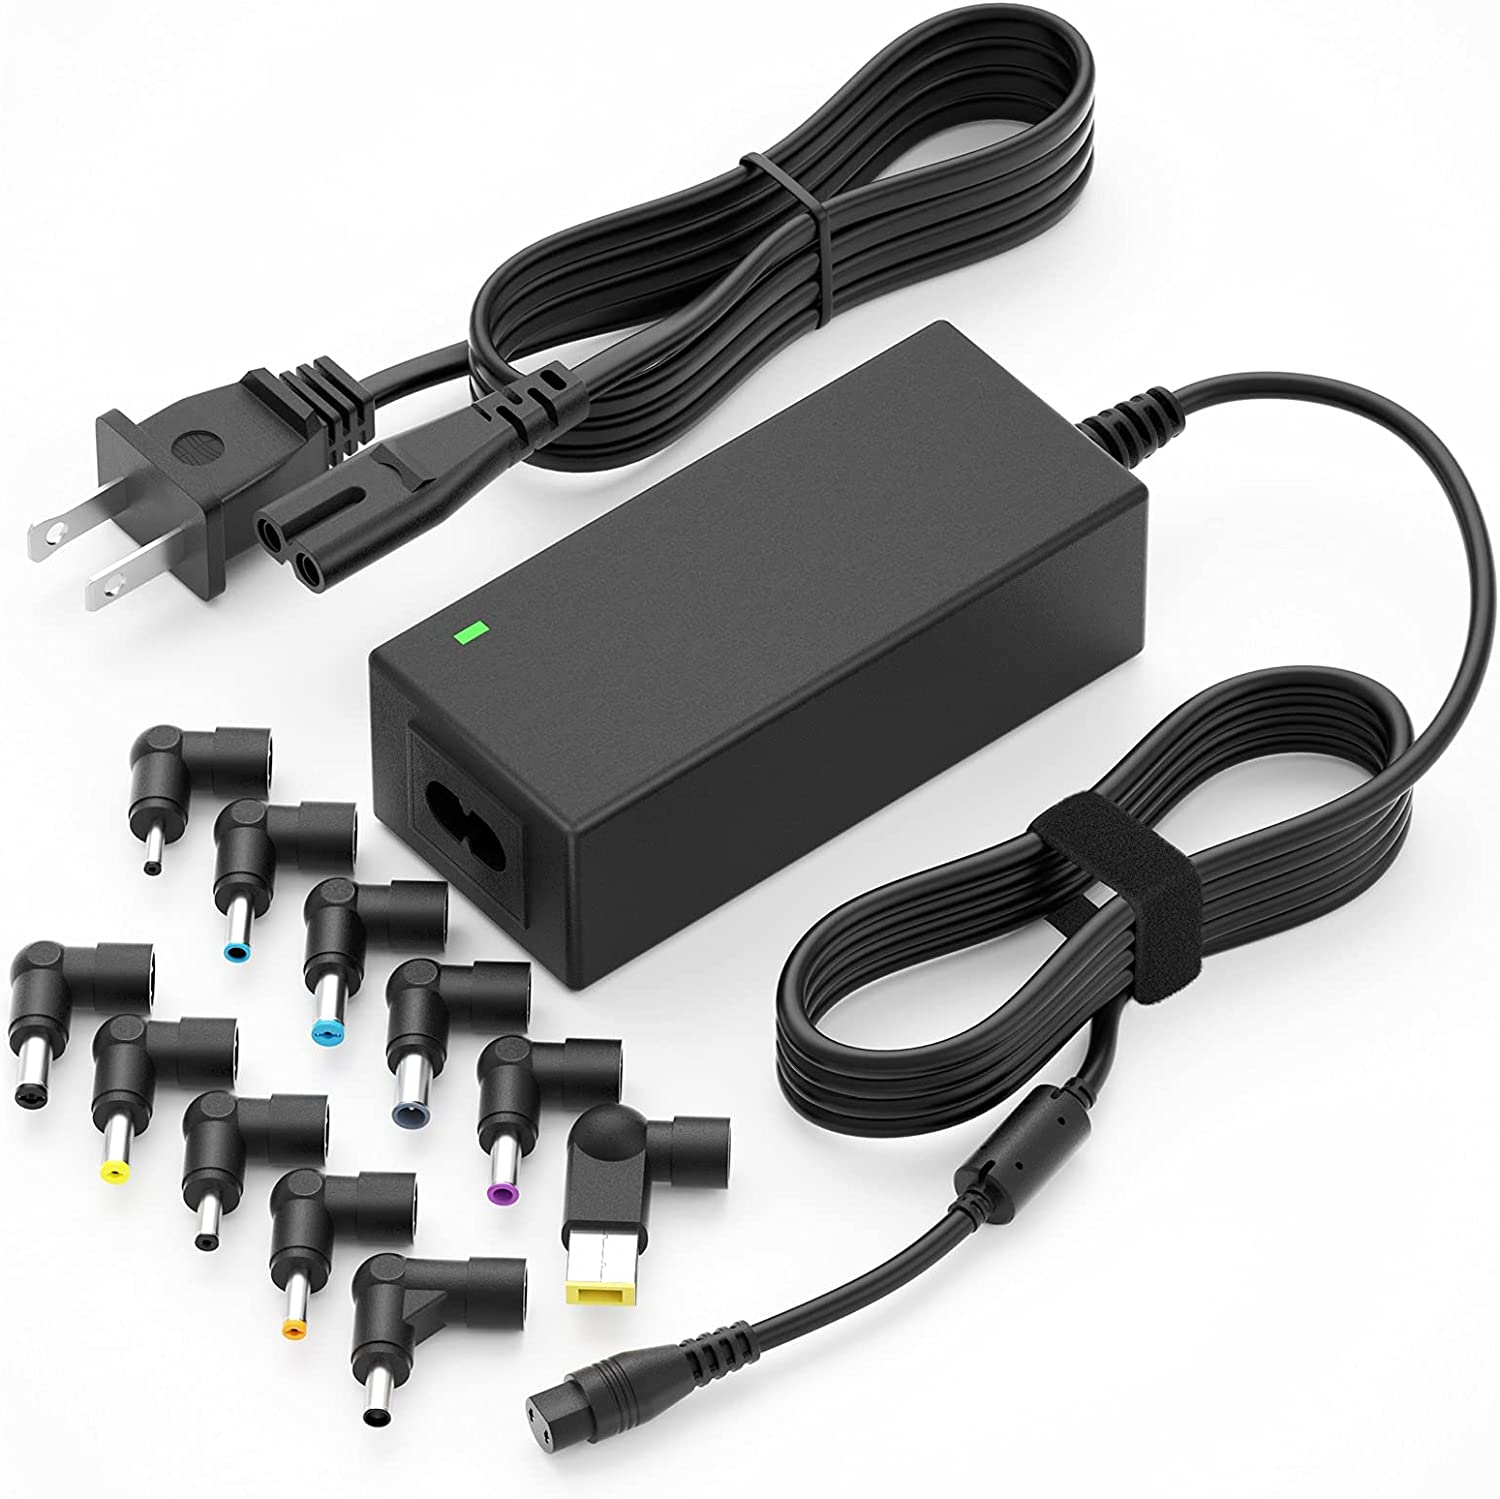 Universal Laptop Charger 45W Power Adapter for Dell hp Samsung Sony Acer Asus Toshiba Gateway FUJITSU Delta NEC Liteon and chromebooks laptops ultrabook Notebook Computers